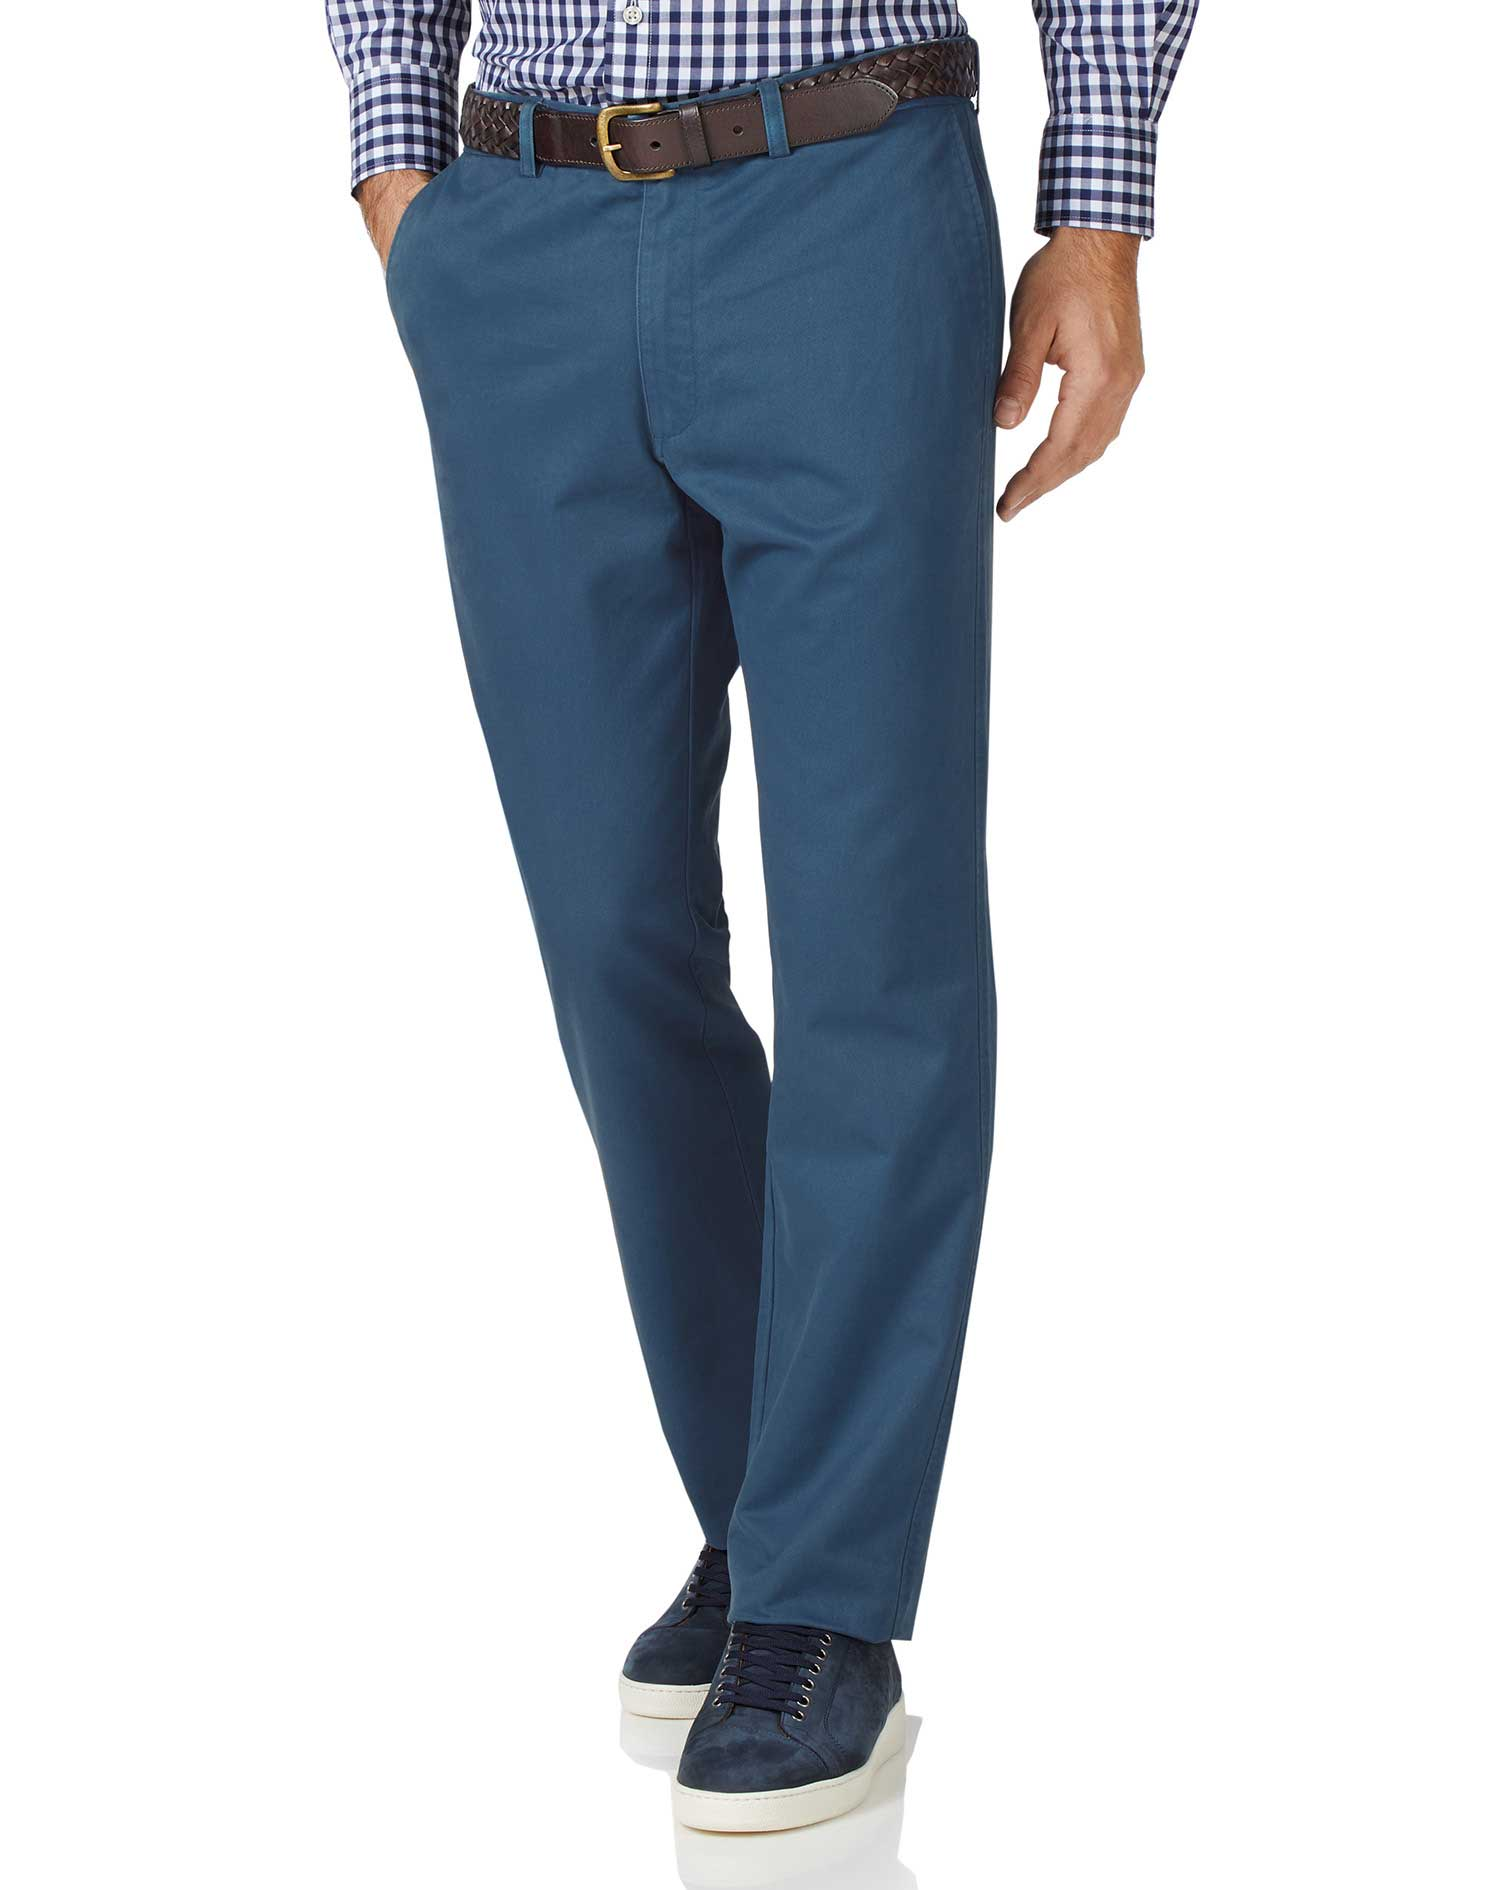 Bright Blue Slim Fit Flat Front Washed Cotton Chino Trousers Size W36 L30 by Charles Tyrwhitt